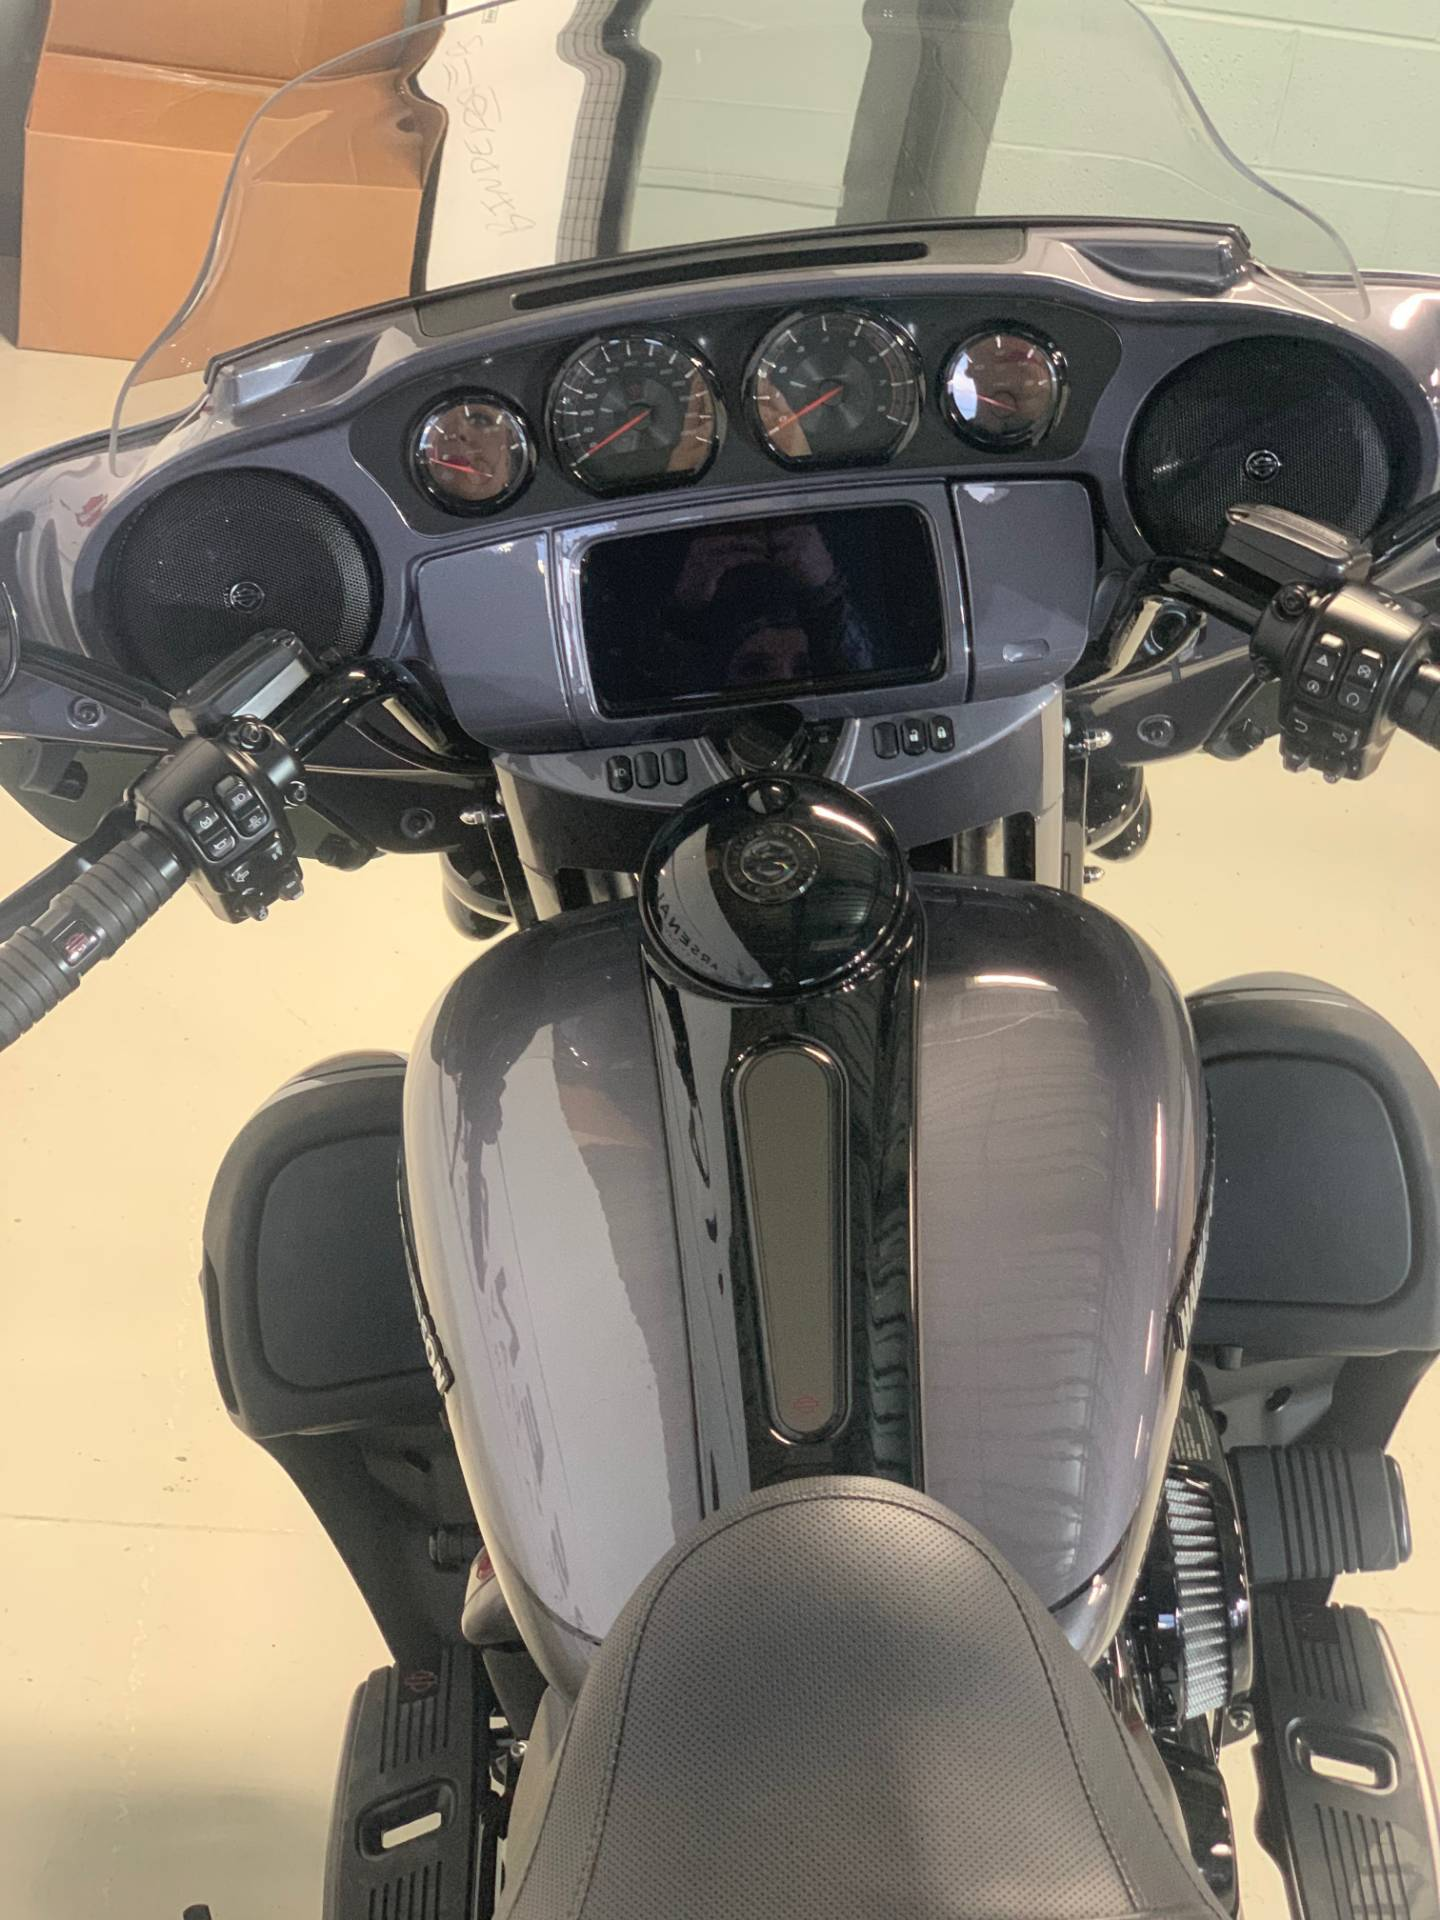 2020 Harley-Davidson CVO Limited in Waterford, Michigan - Photo 5